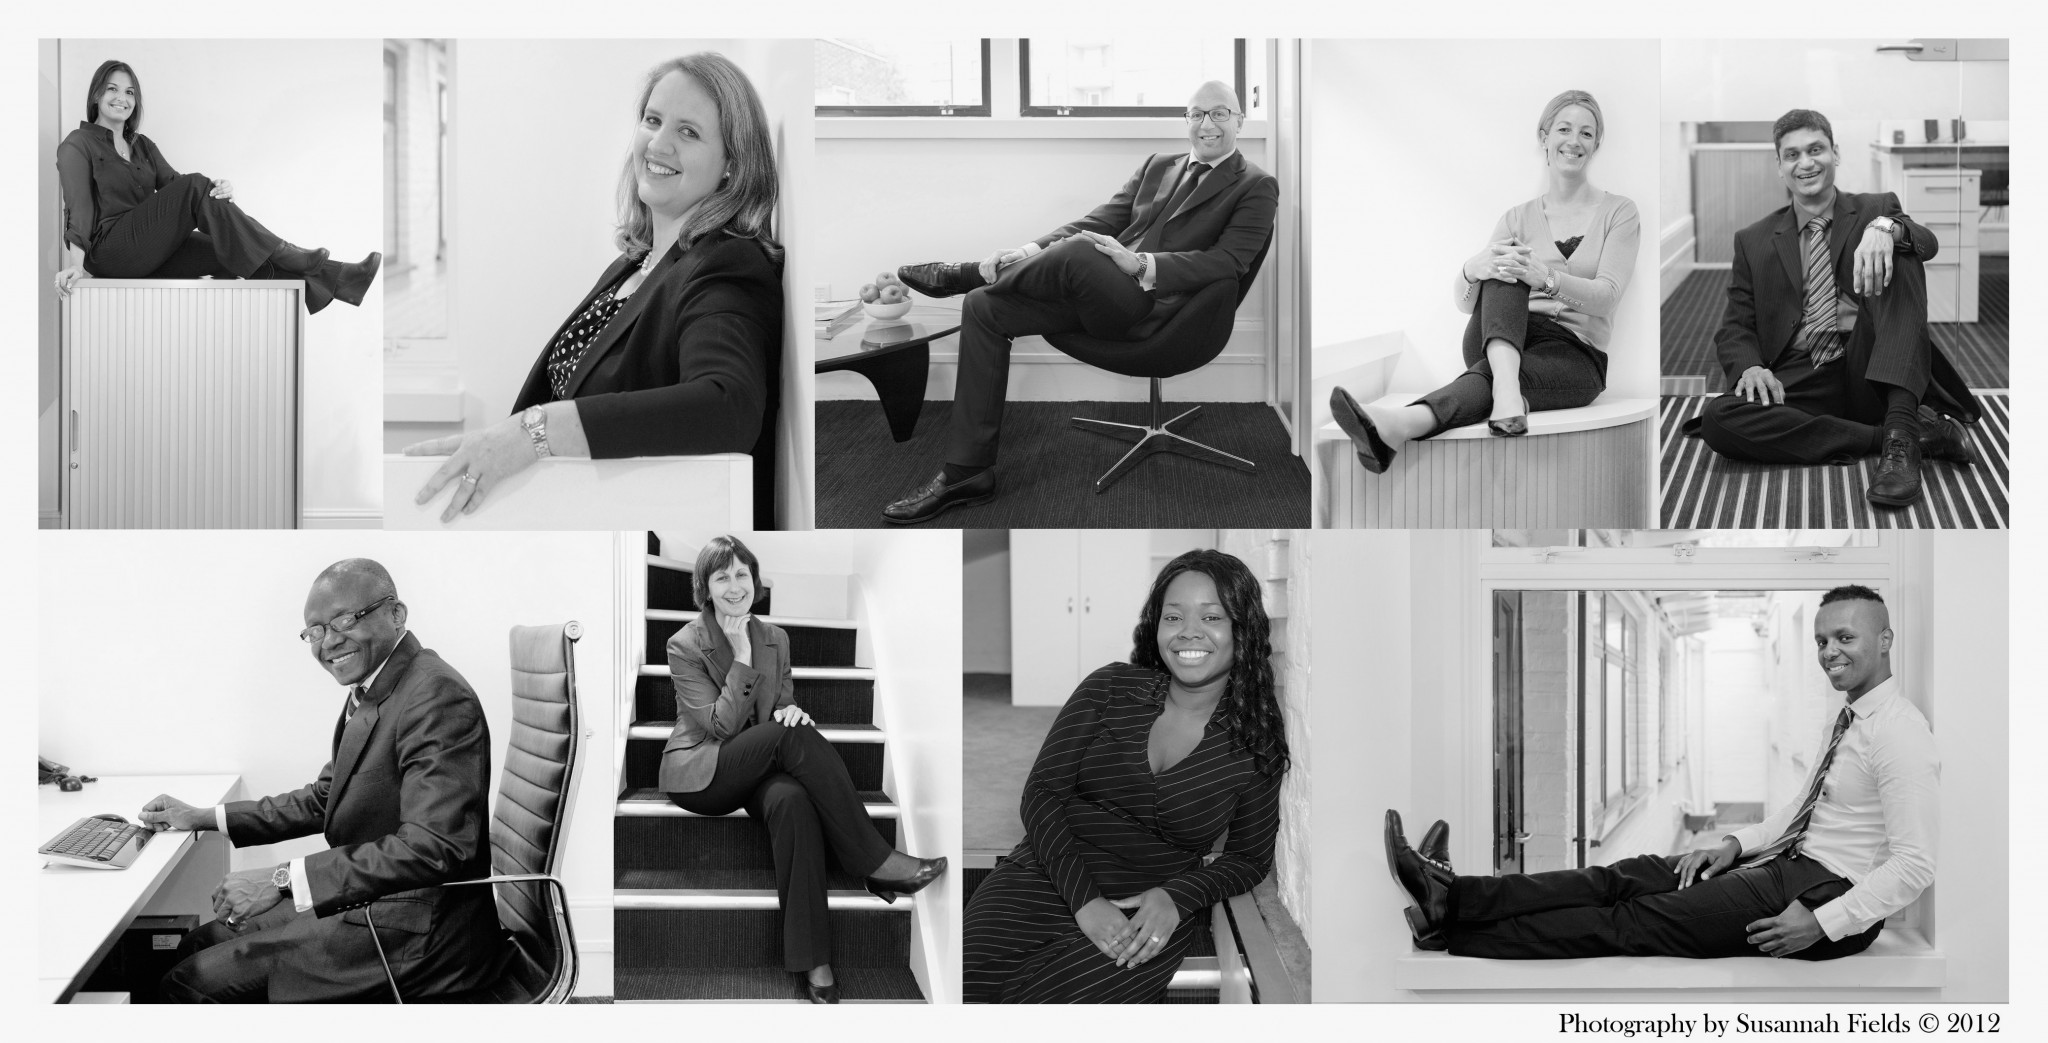 Portraits of Staff and headshot photography at Casna Group PLC